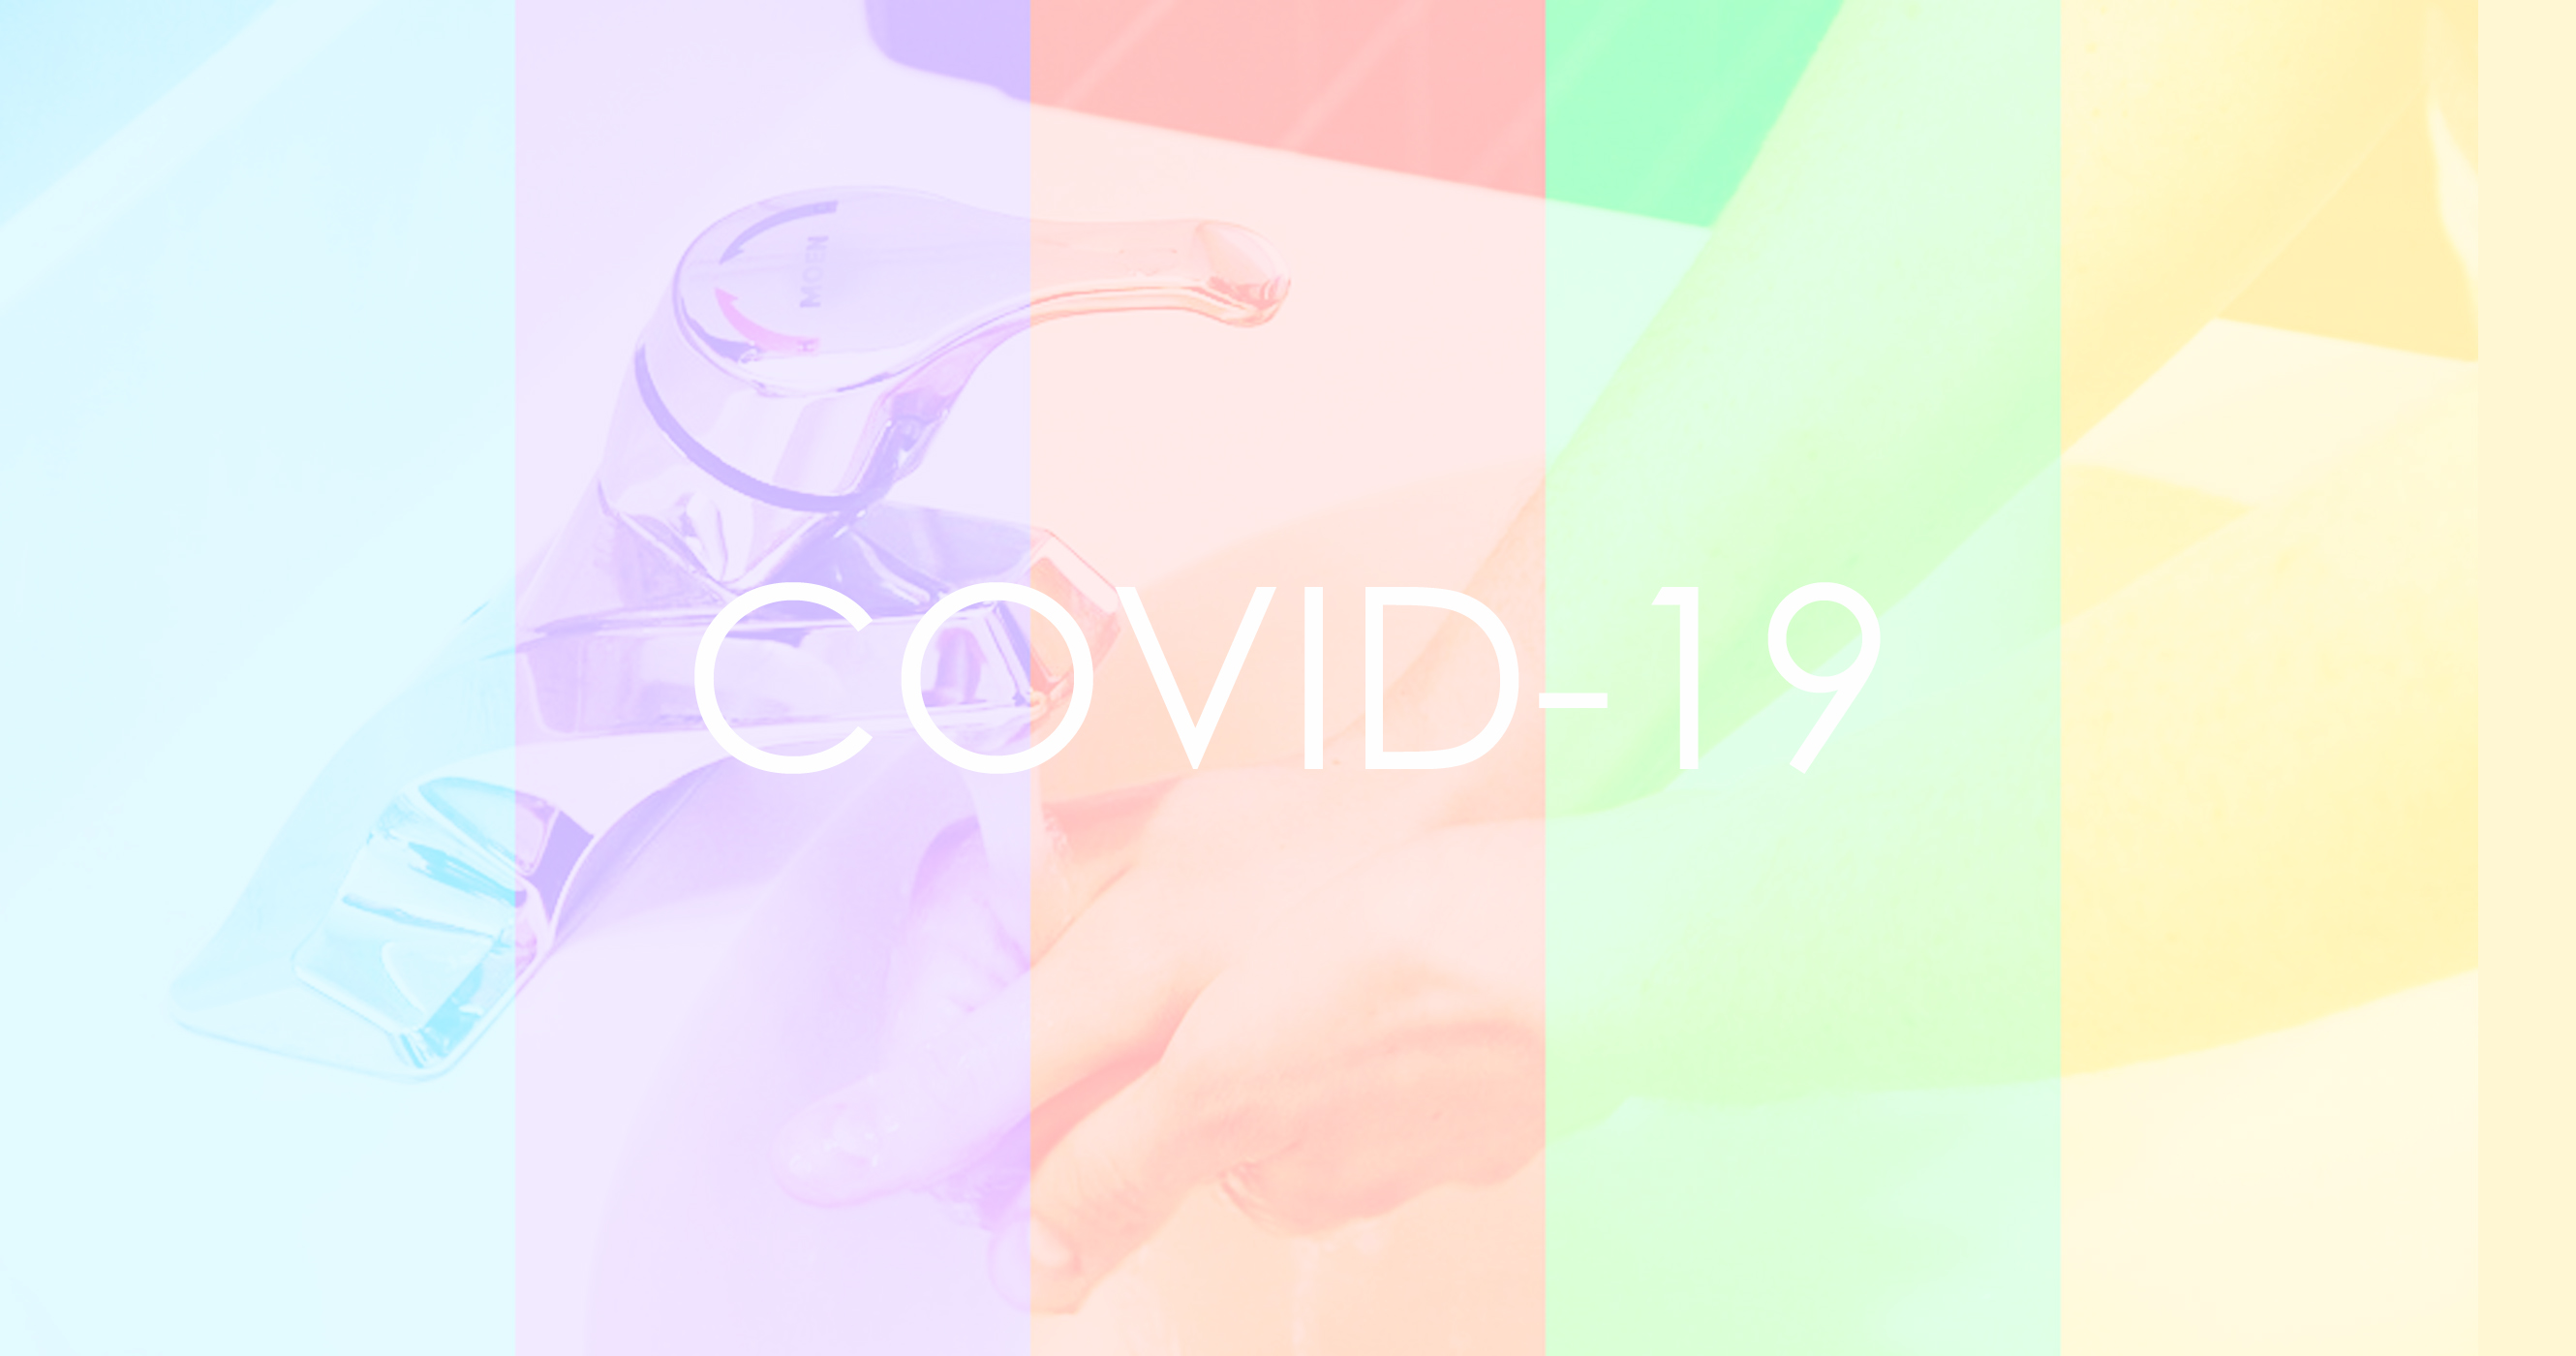 Novotaste's message amid the COVID-19 pandemic and notification of continuing operations